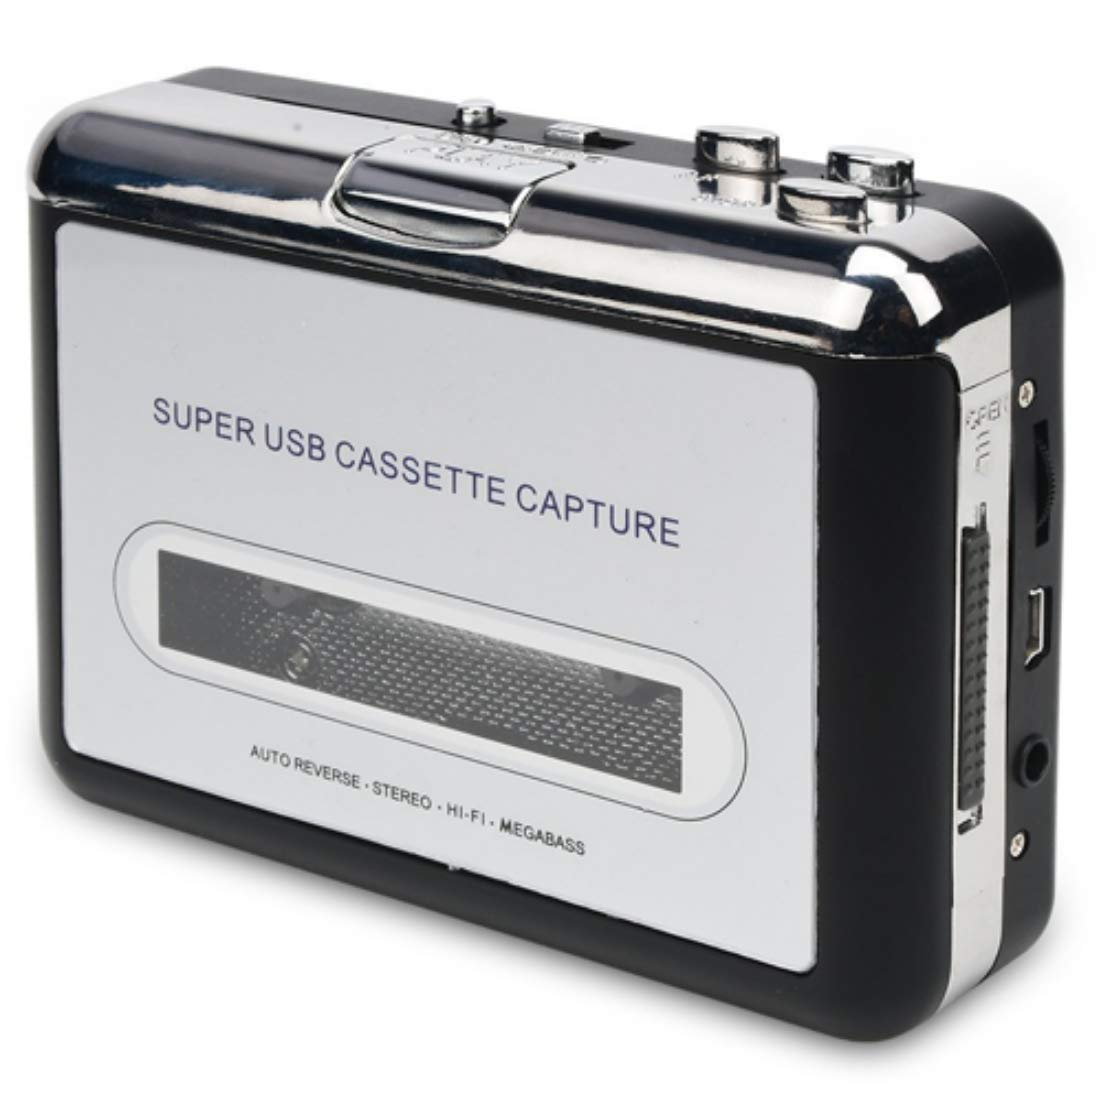 Deals Cassette to MP3 Converter, USB Cassette Player Recorder to MP3 Converter Retro Walkman Audio Converter Free Ship Deals